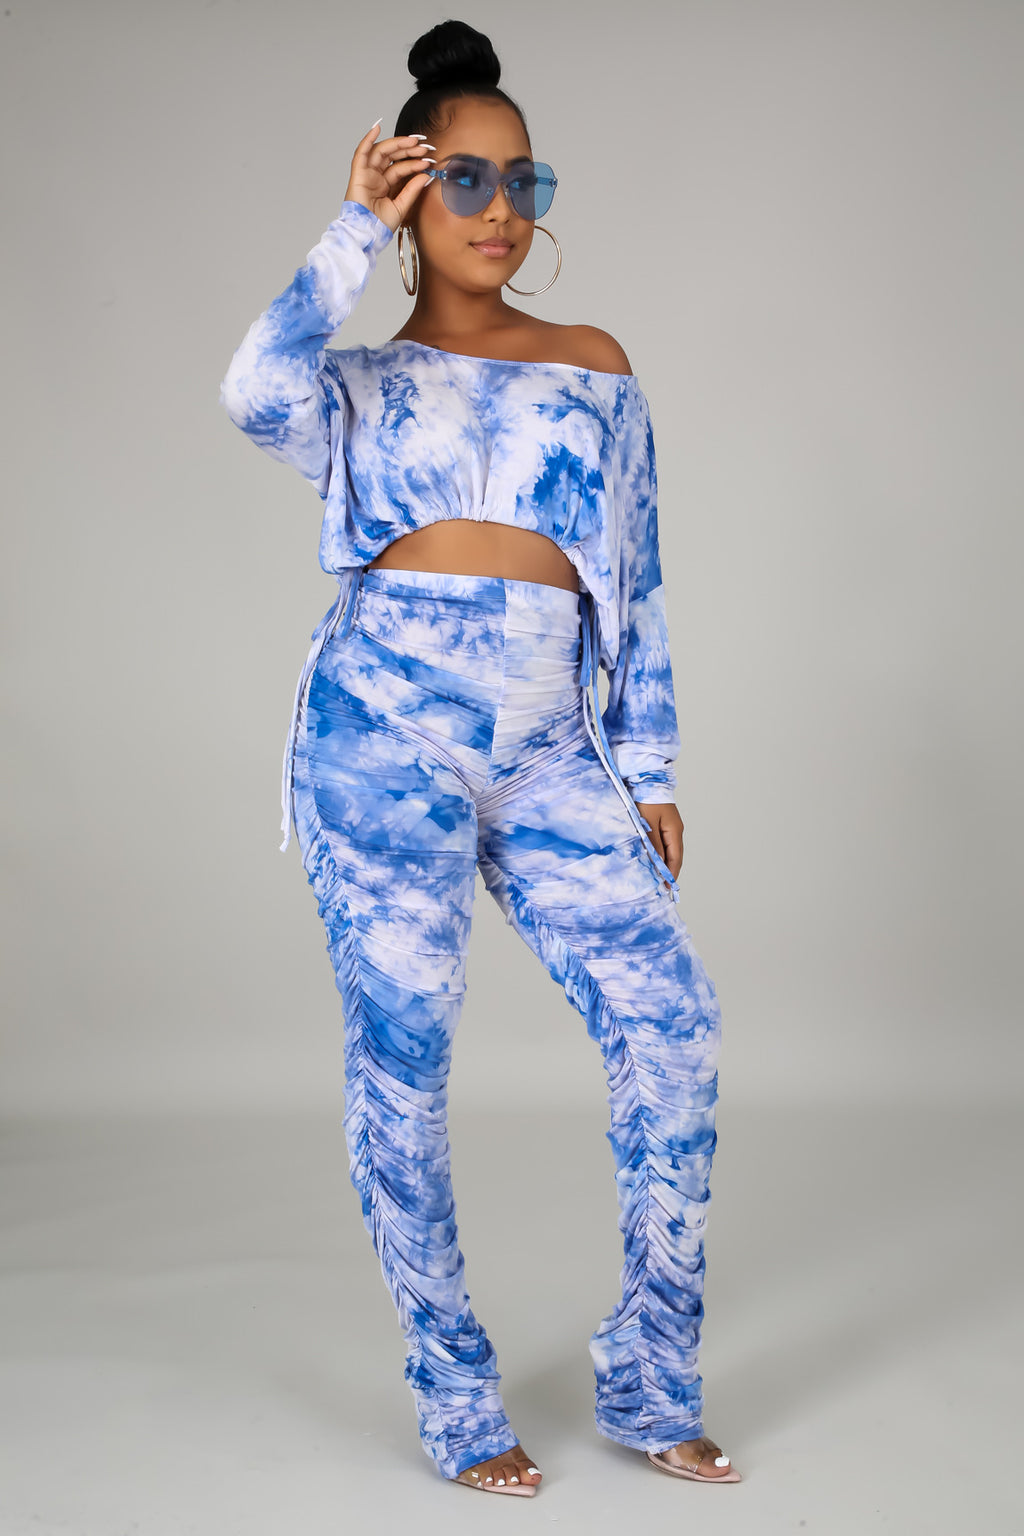 CAN'T GET OVER ME TIE DYE SET